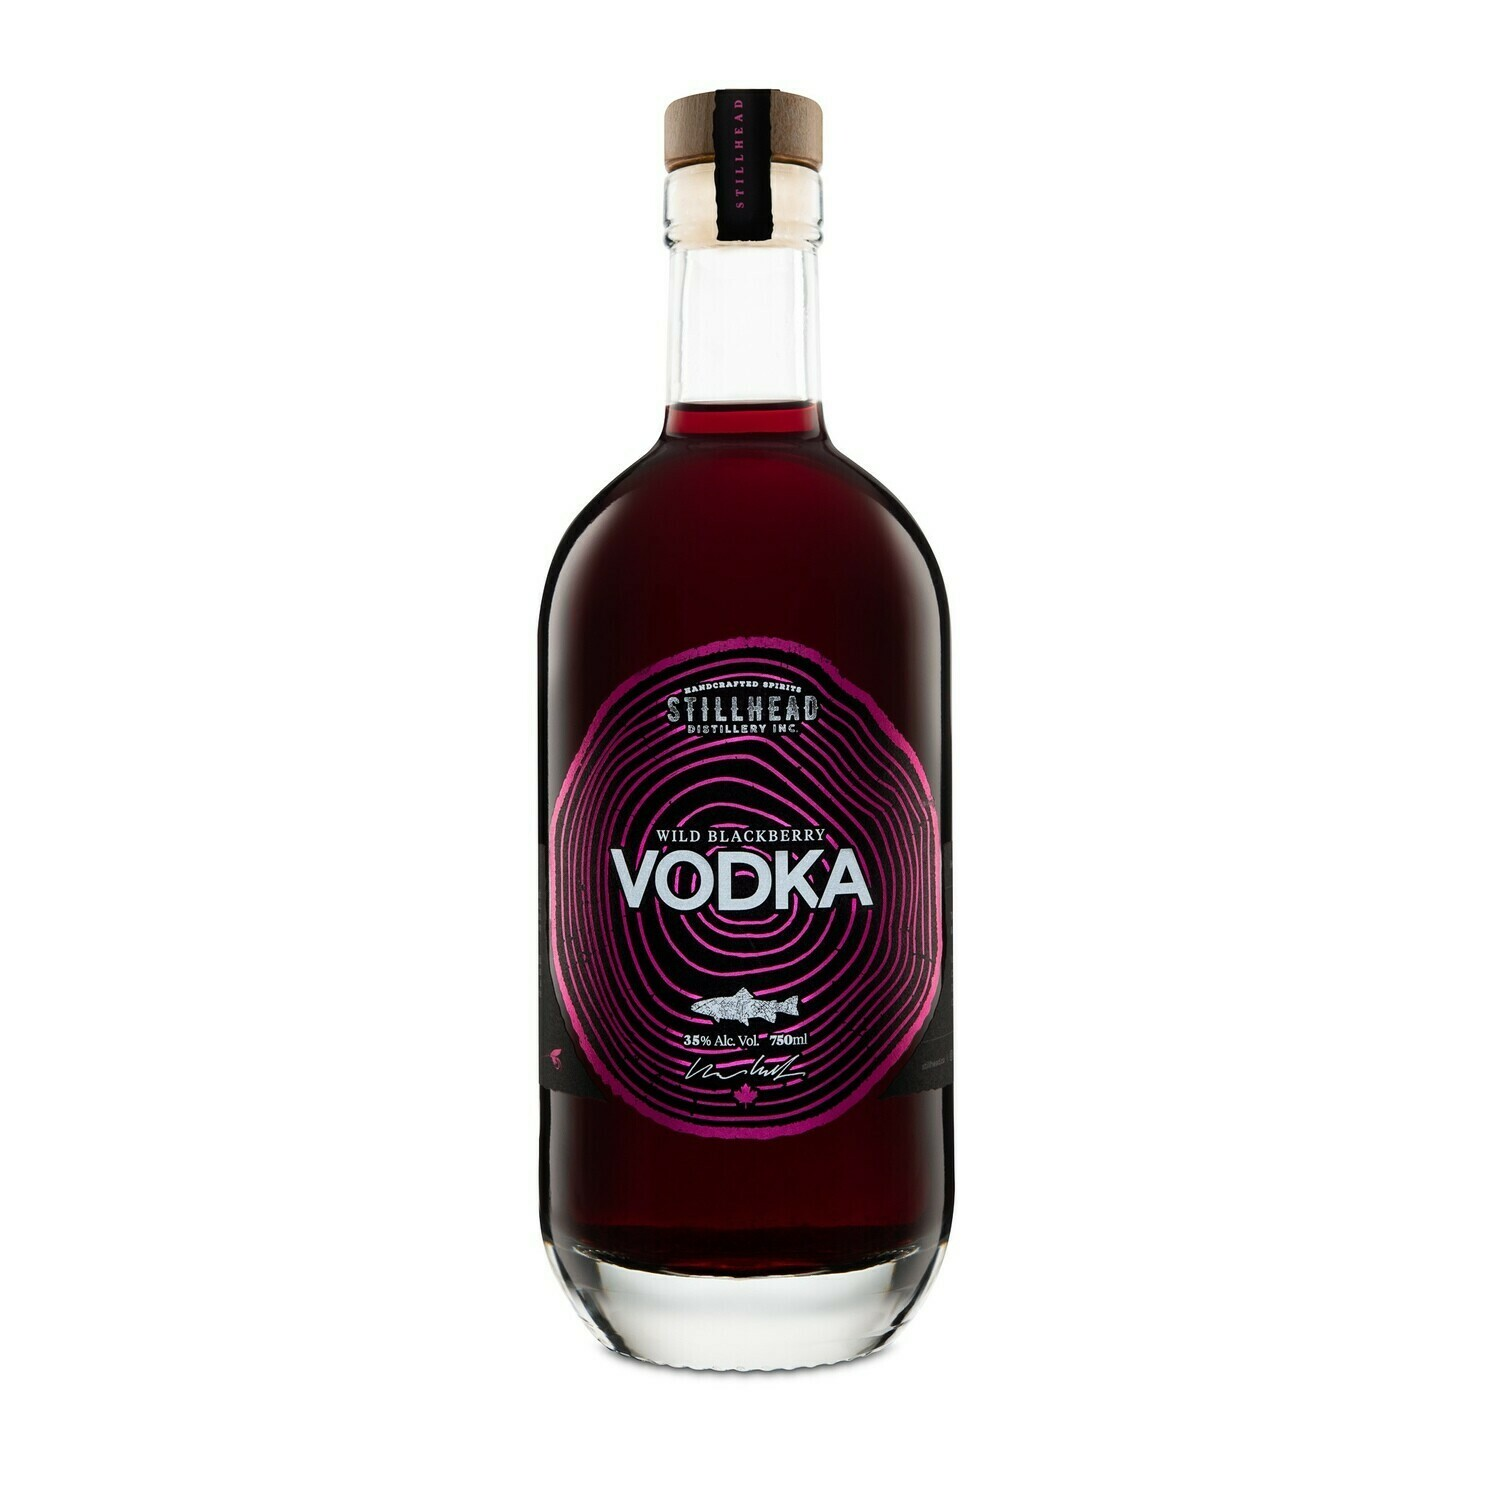 Wild Blackberry Vodka 375mL